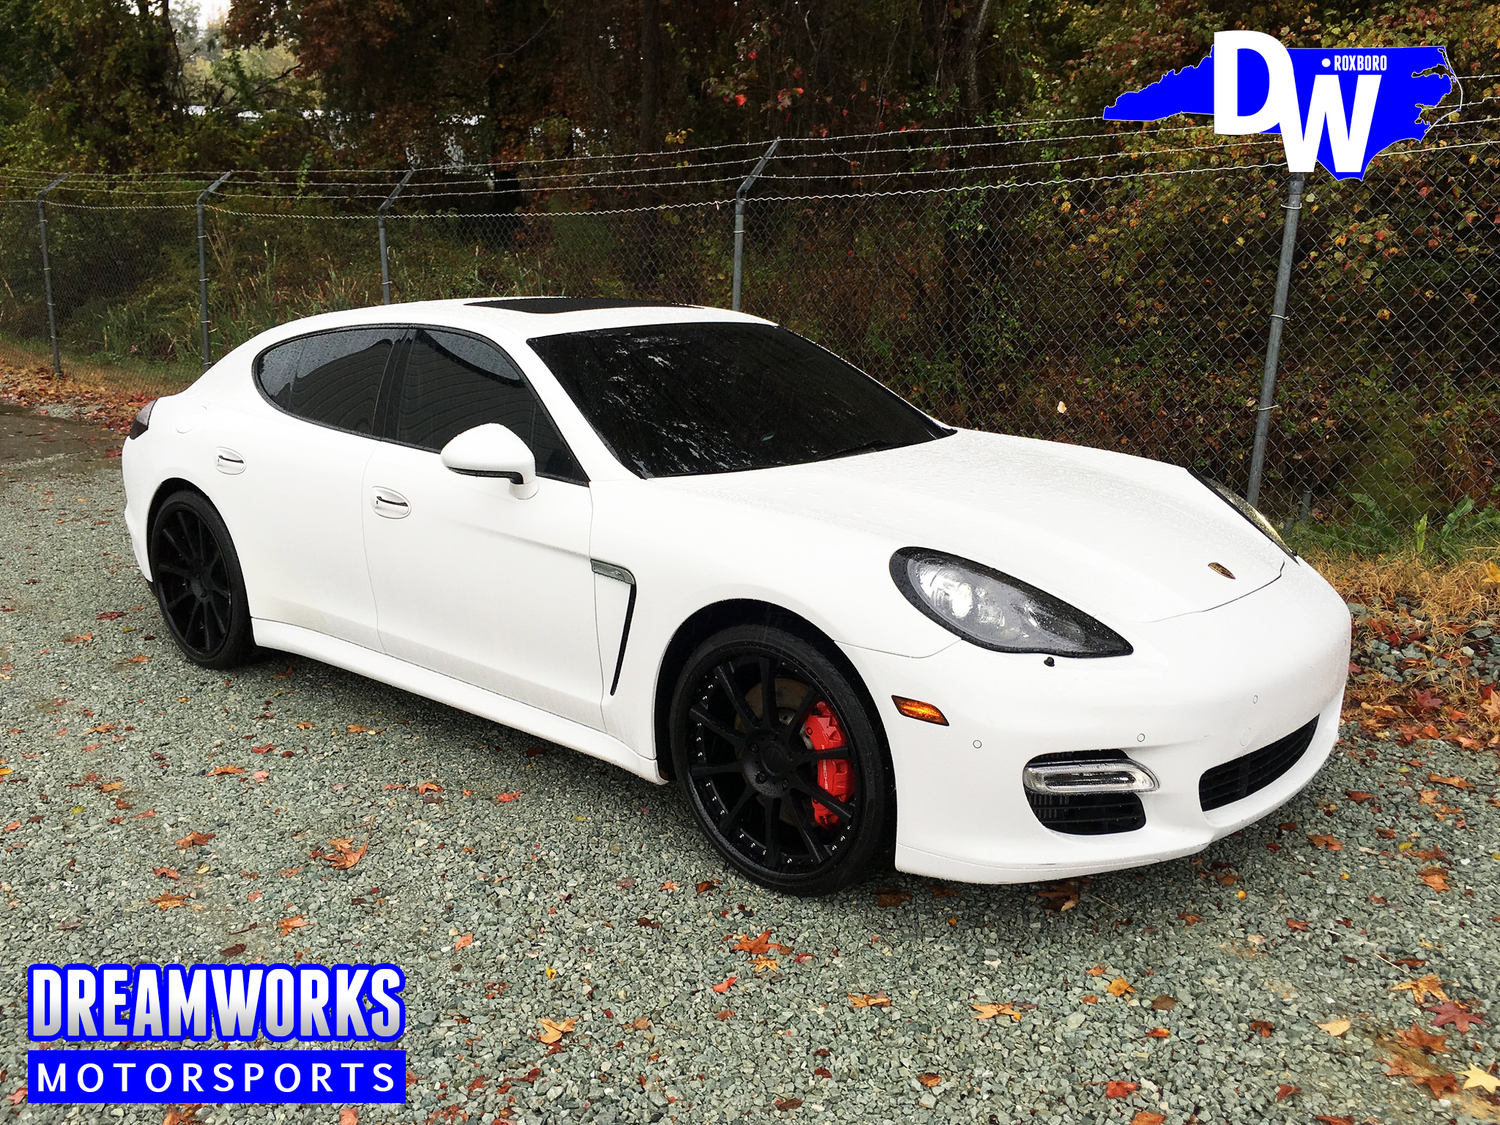 John-Wall-NBA-Washington-Wizards-Kentucky-Word-Of-God-Raleigh-Porsche-Panamera-Dreamworks-Motorsports-1